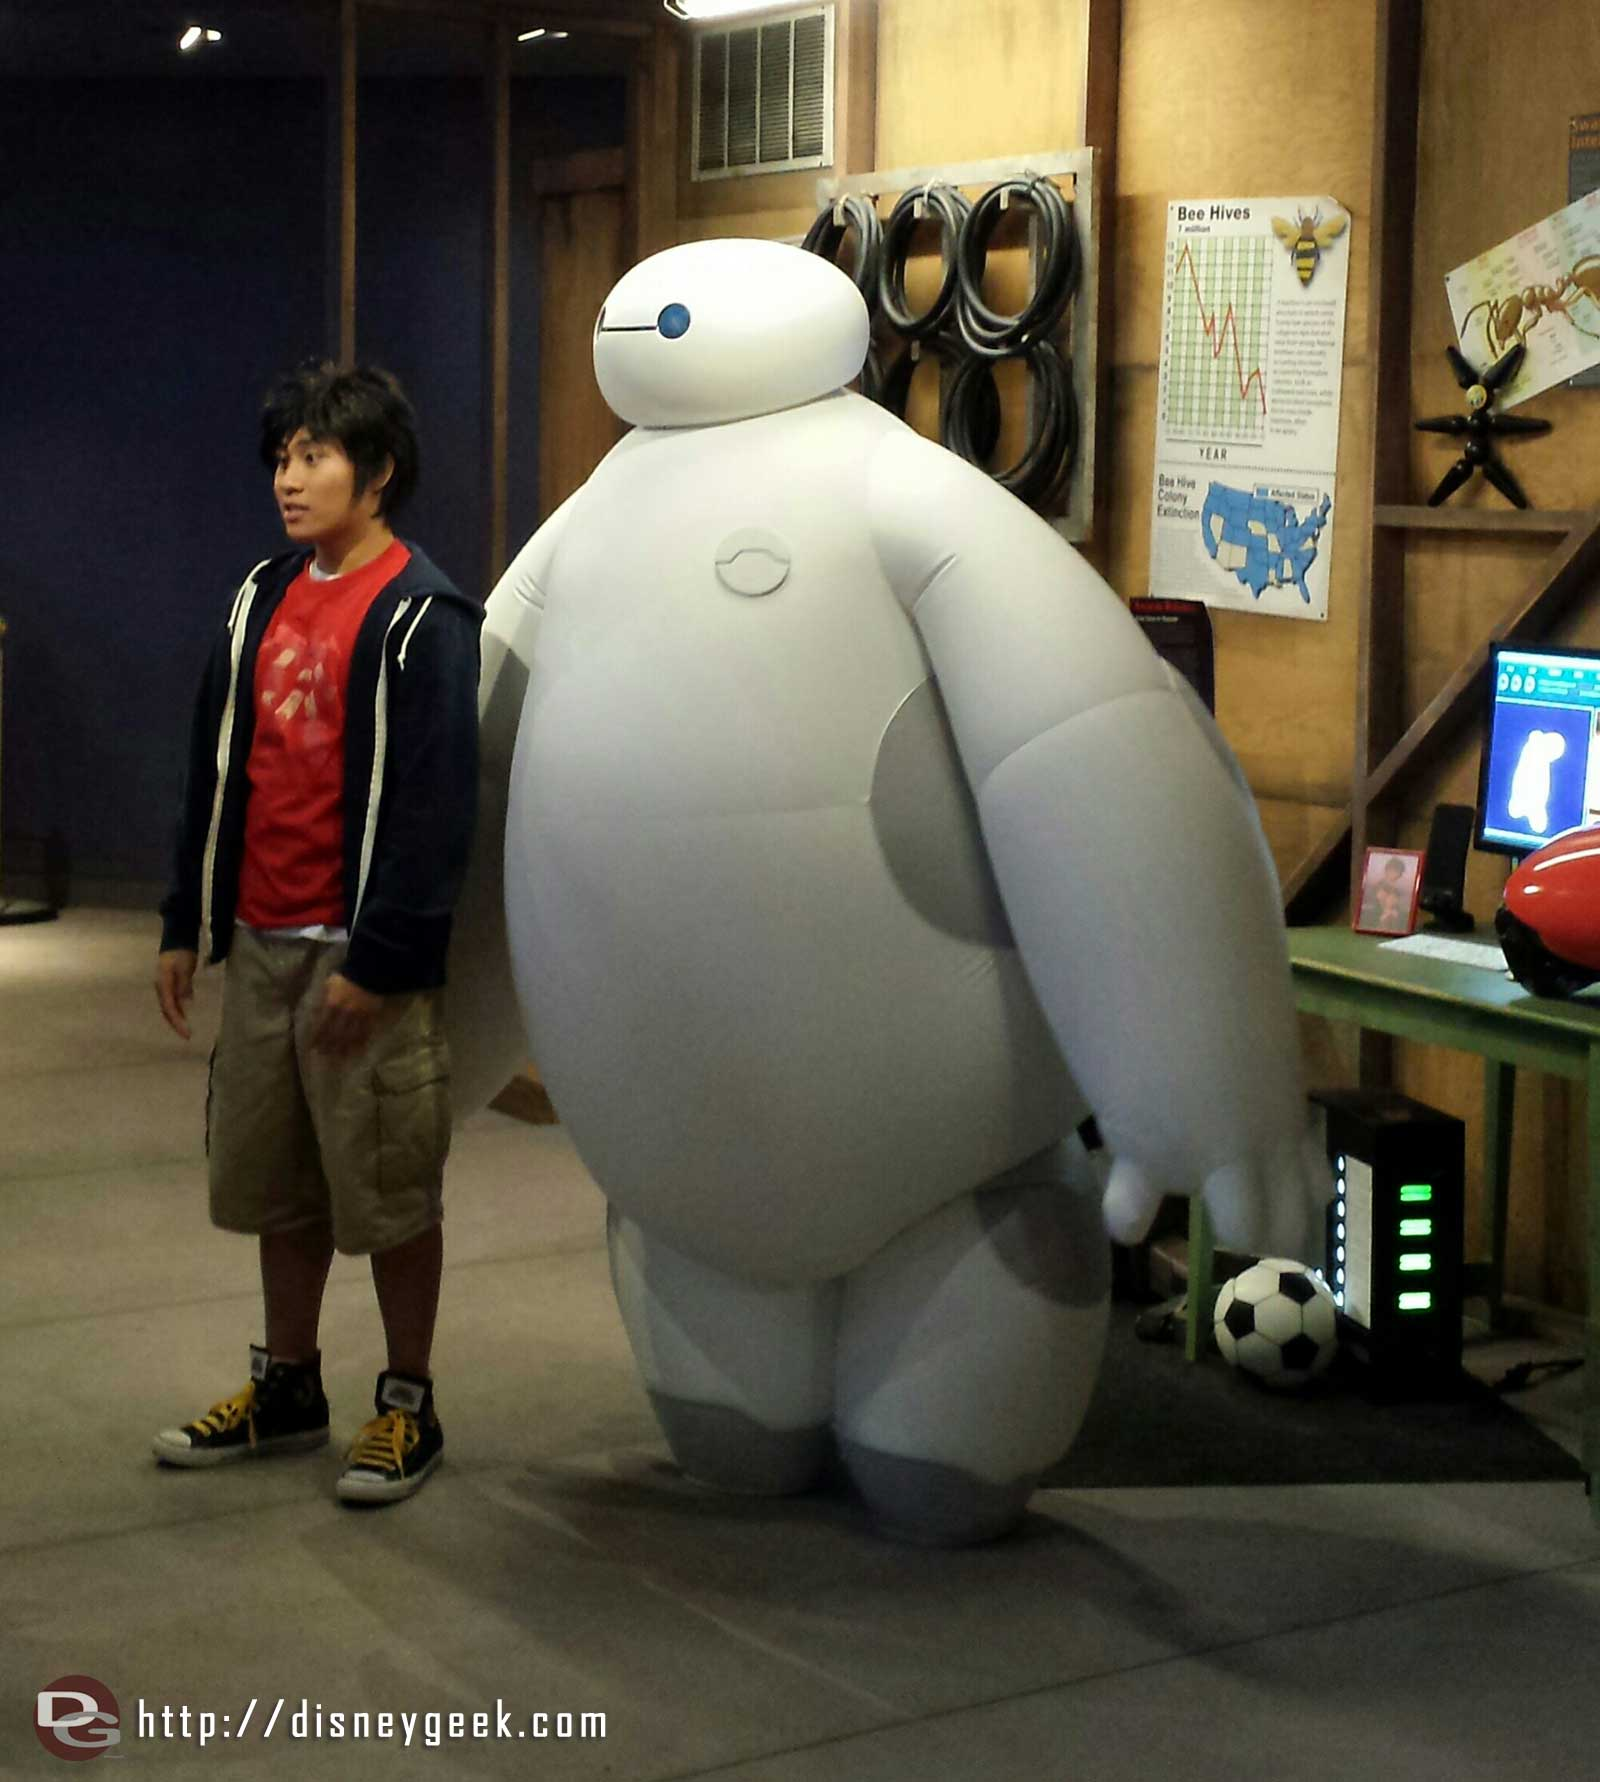 Hiro & Baymax at the #BigHero6 Meet & Greet in the Starcade #Disneyland